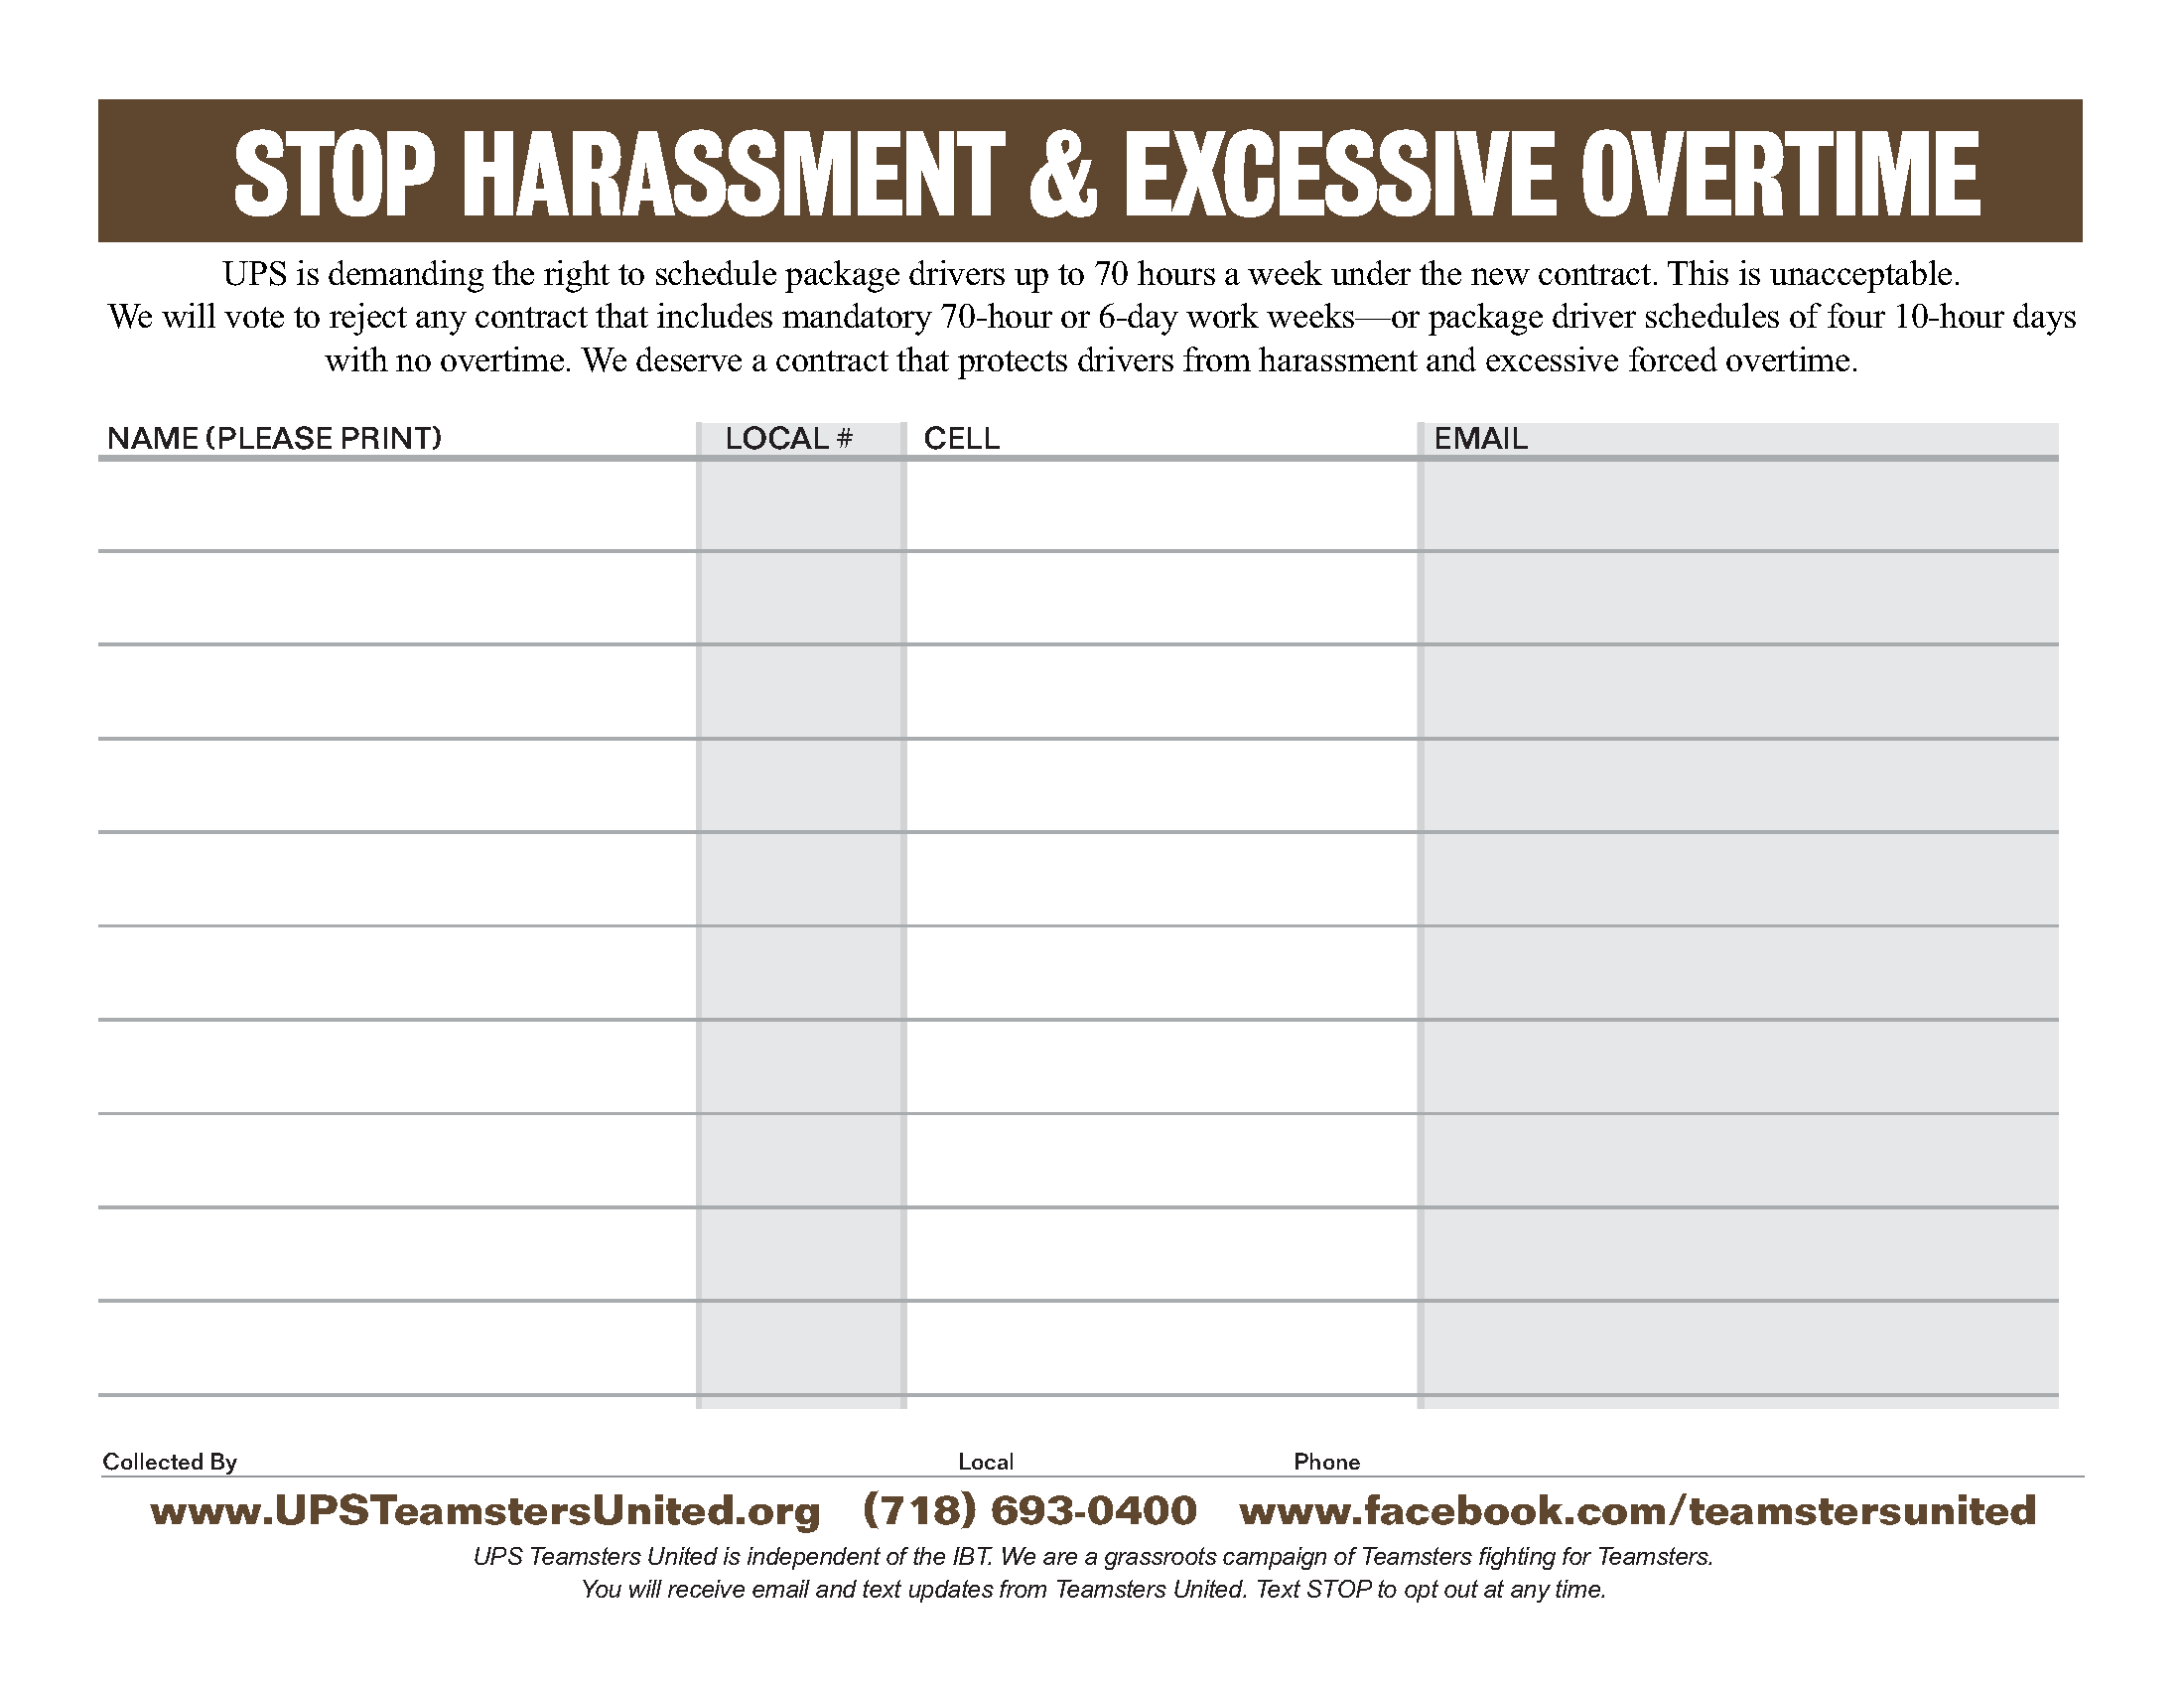 STOP-HARASSMENT-EXCESSIVE-OT-PETITION-color.png